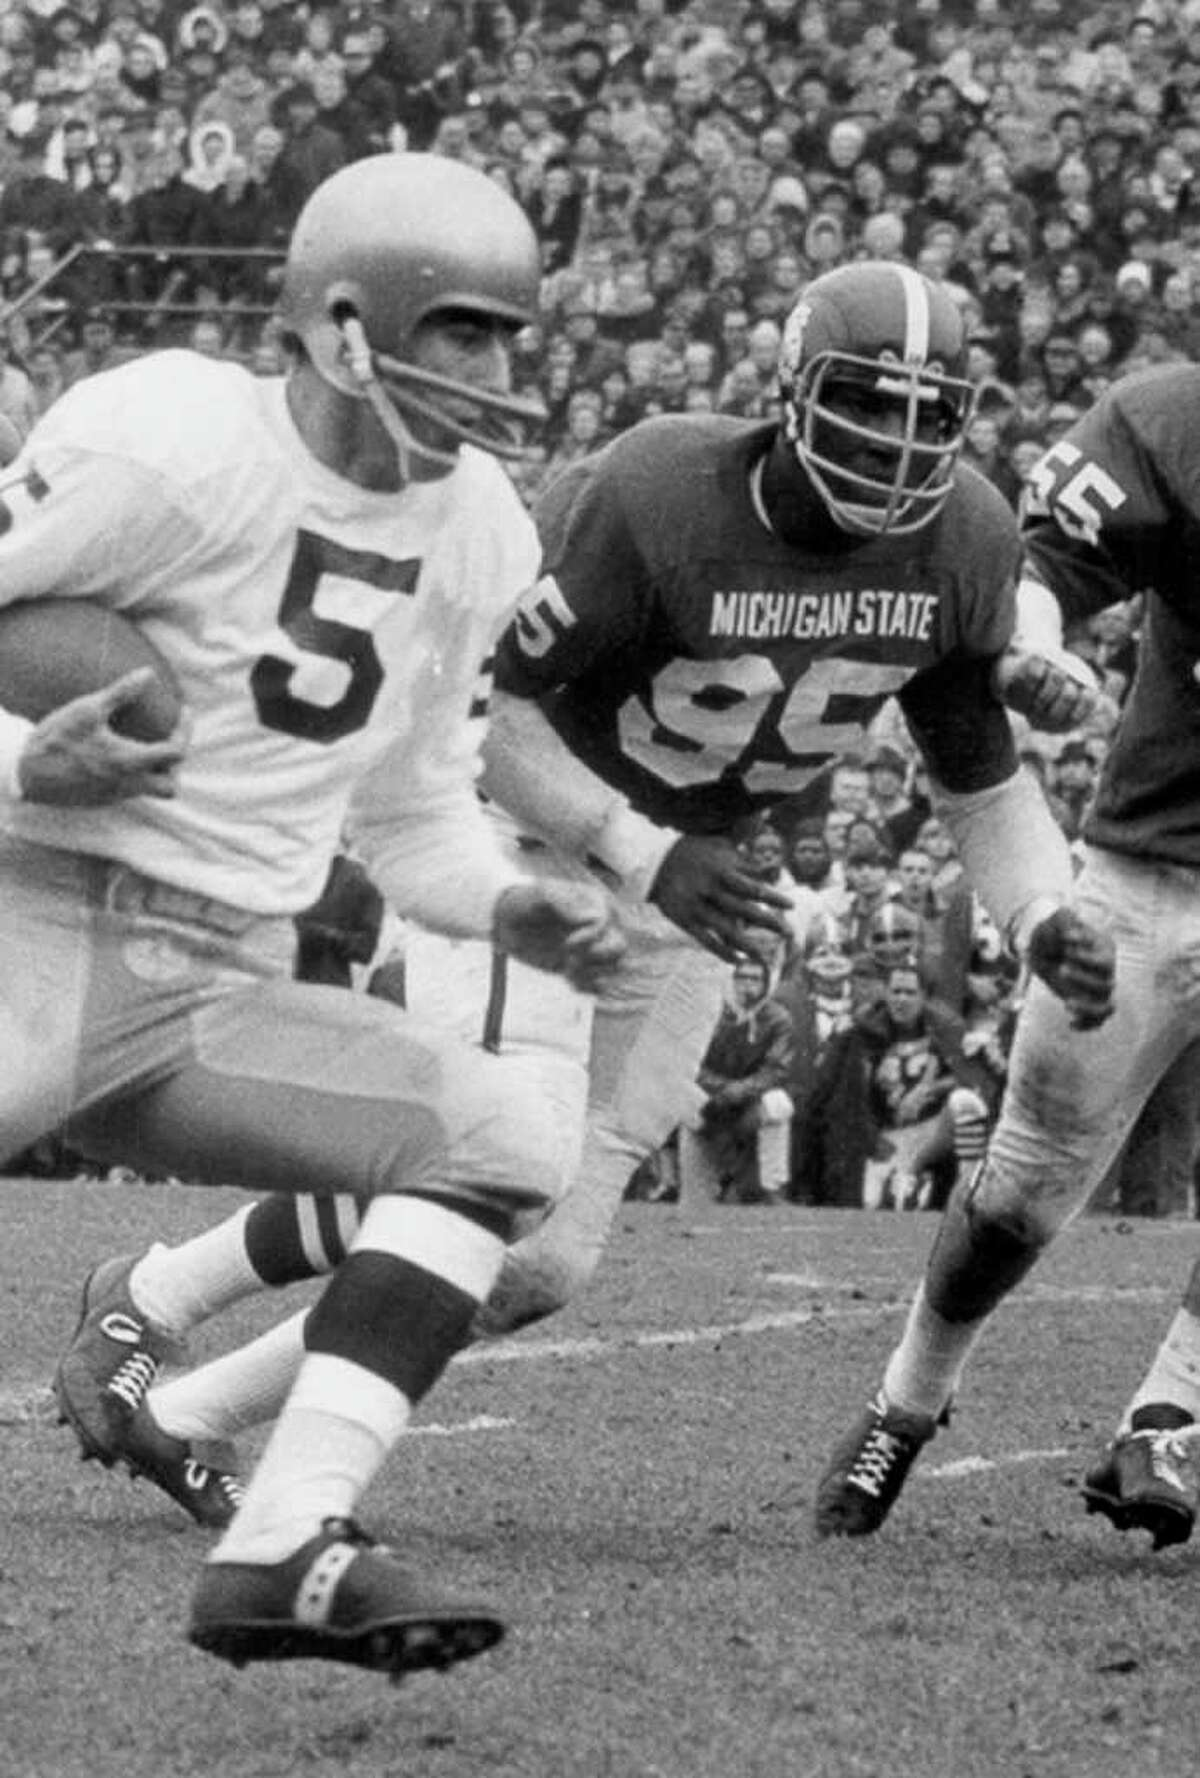 In a 1966 photo provided by Michigan State University, Michigan State's Bubba Smith, rear, chases down Notre Dame quarterback Terry Hanratty during a college football game in East Lansing, Mich. Smith, an NFL defensive star who found a successful second career as an actor, died Wednesday, Aug. 3, 2011, in Los Angeles at age 66. Los Angeles County coroner's spokesman Ed Winter said Smith was found dead at his Baldwin Hills home. Winter said he didn't know the circumstances or cause of death. (AP Photo/Michigan State University)